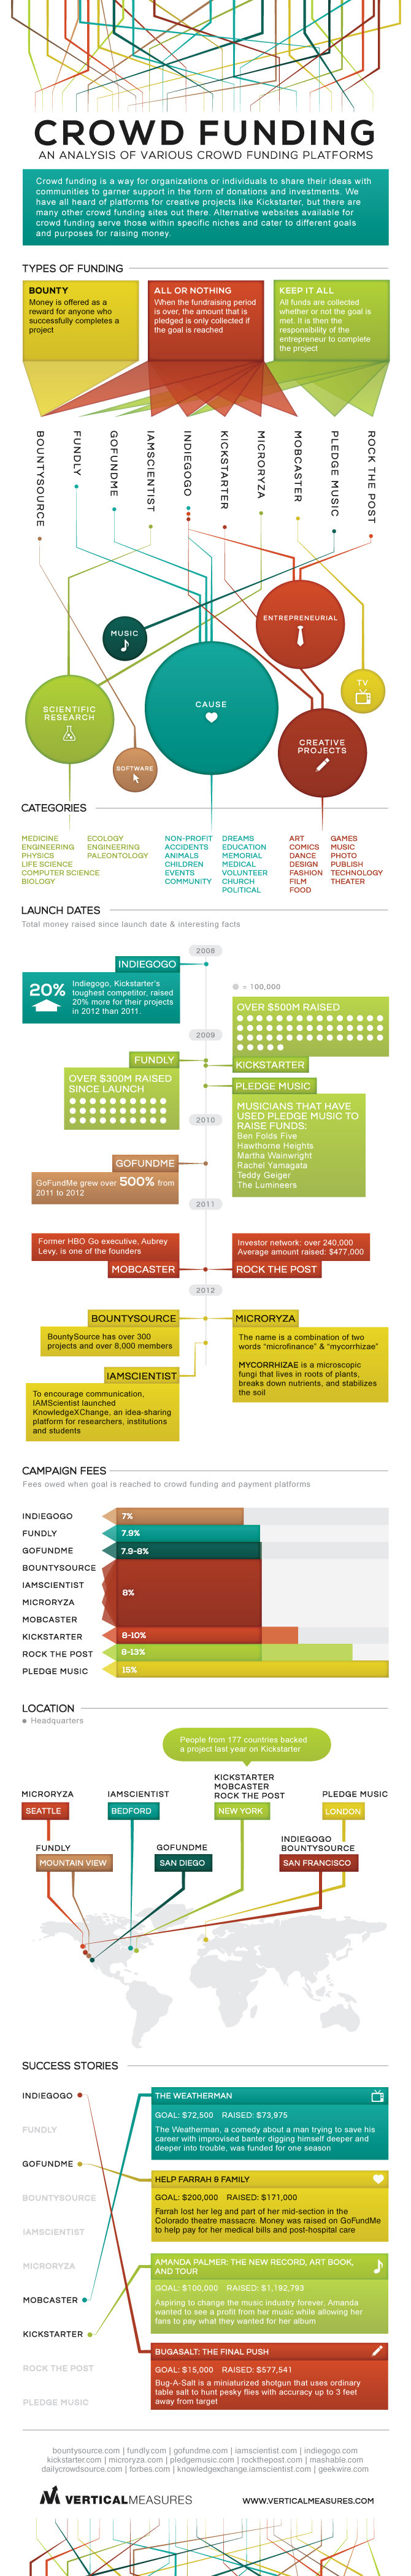 How Do The Top 10 Crowd Funding Platforms Compare? #Infographic